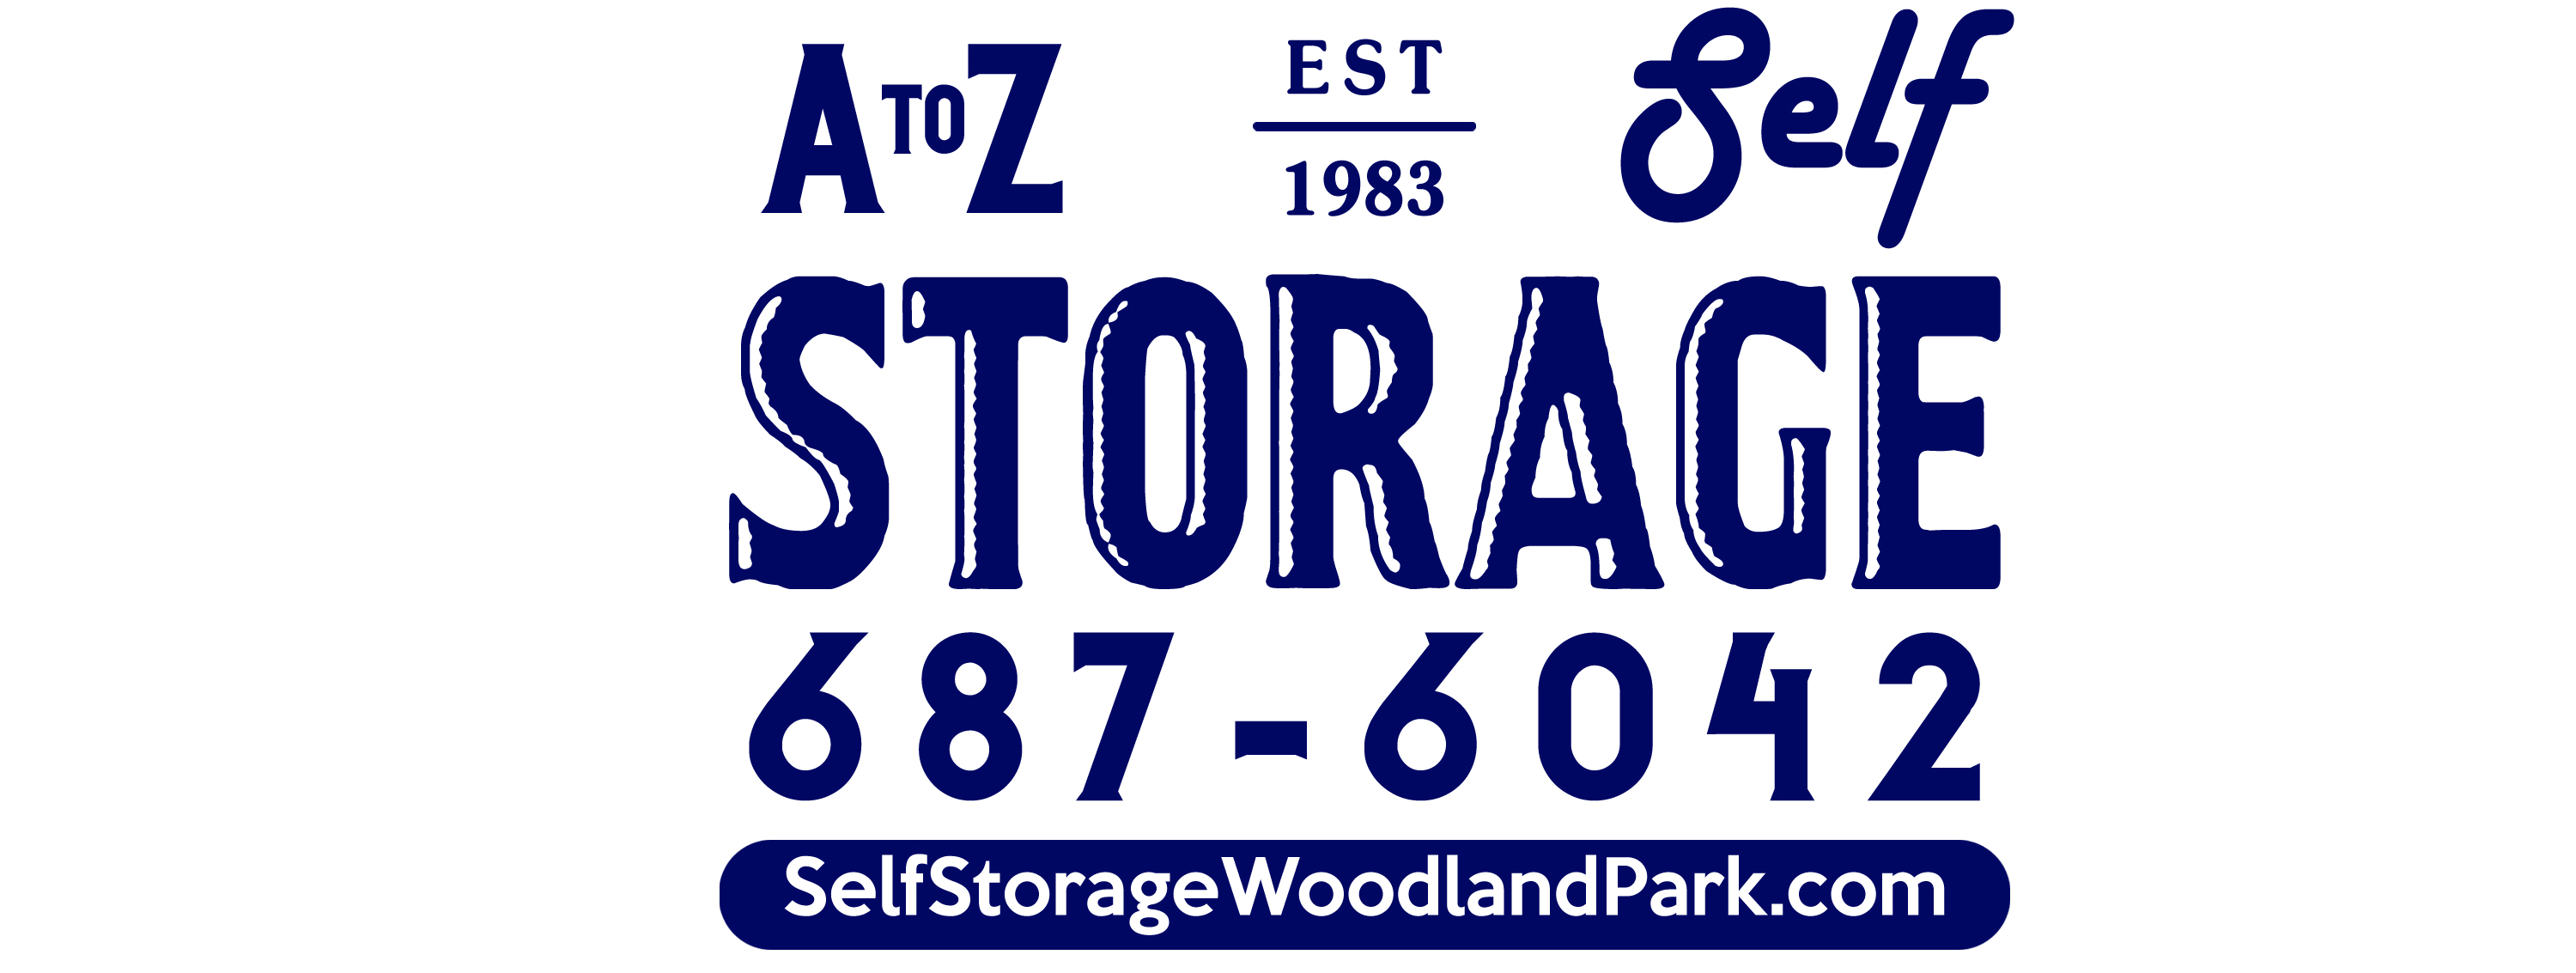 A-Z Storage Self-Storage Woodland Park